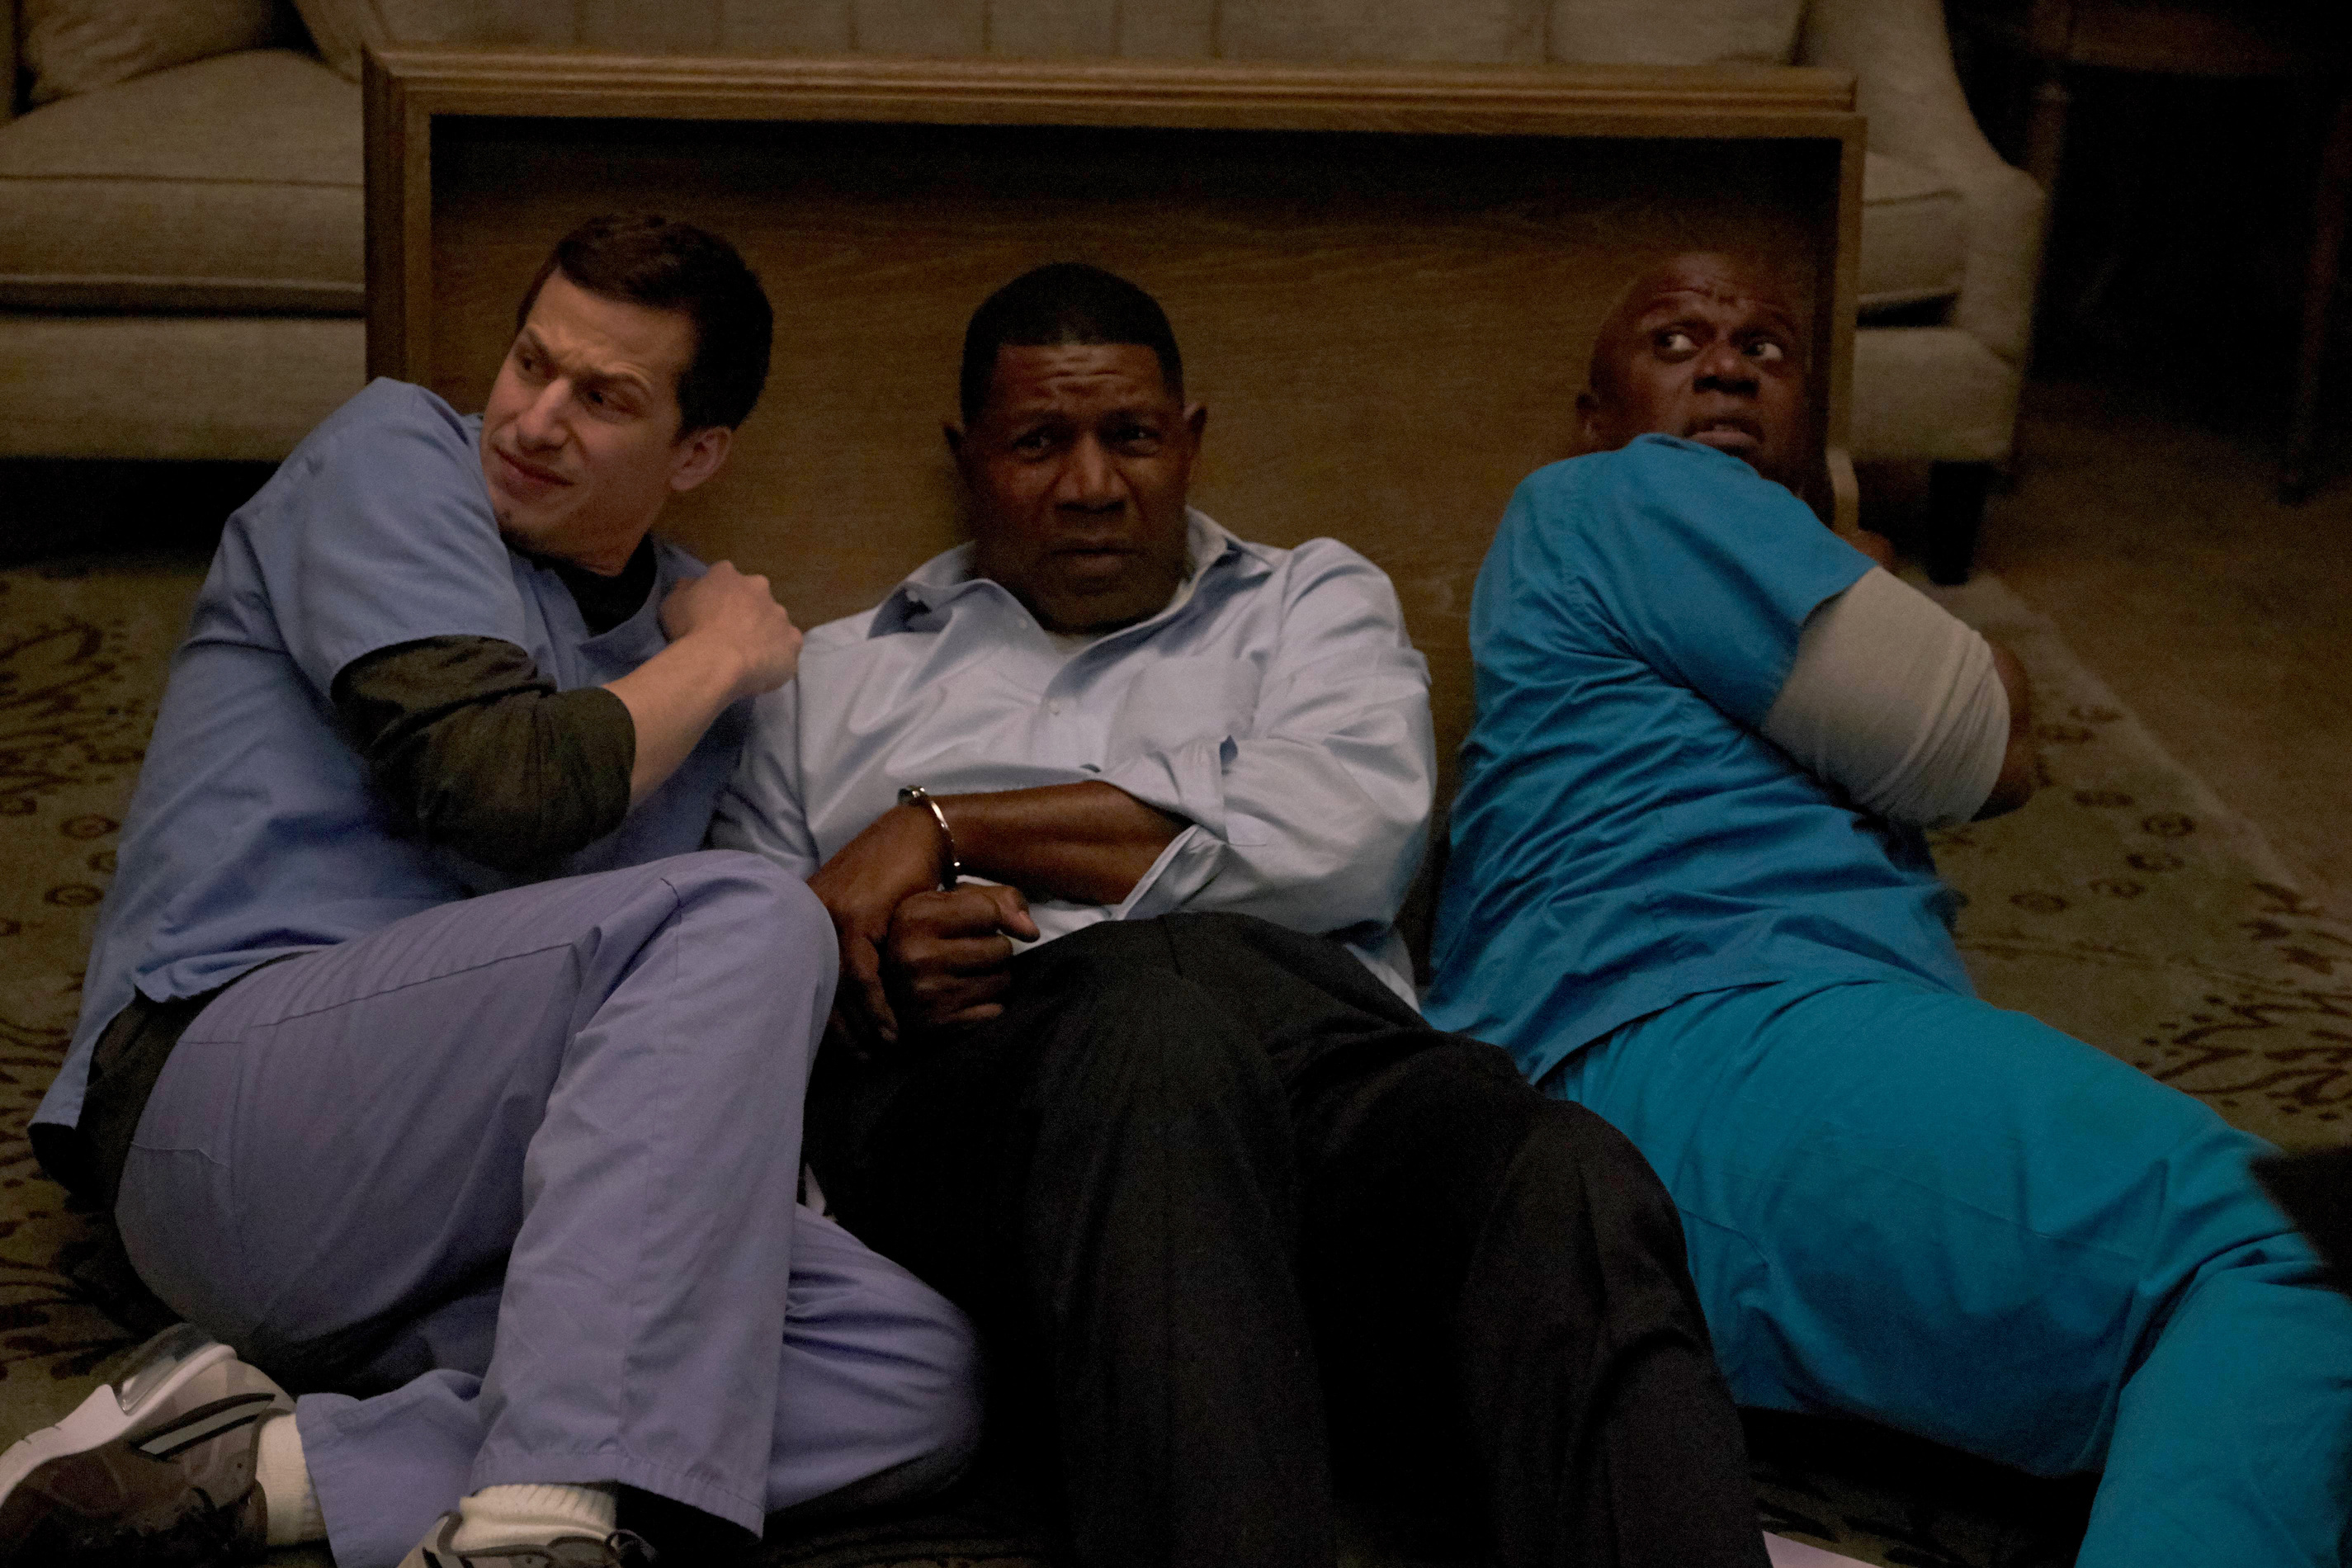 "BROOKLYN NINE-NINE: L-R: Andy Samberg, guest star Dennis Haysbert and Andre Braugher in the ""Greg and Larry"" season finale episode of BROOKLYN NINE-NINE airing Tuesday, April 19 (9:00-9:30 PM ET/PT) on FOX. ©2016 Fox Broadcasting Co. CR: John P. Fleenor/FOX"